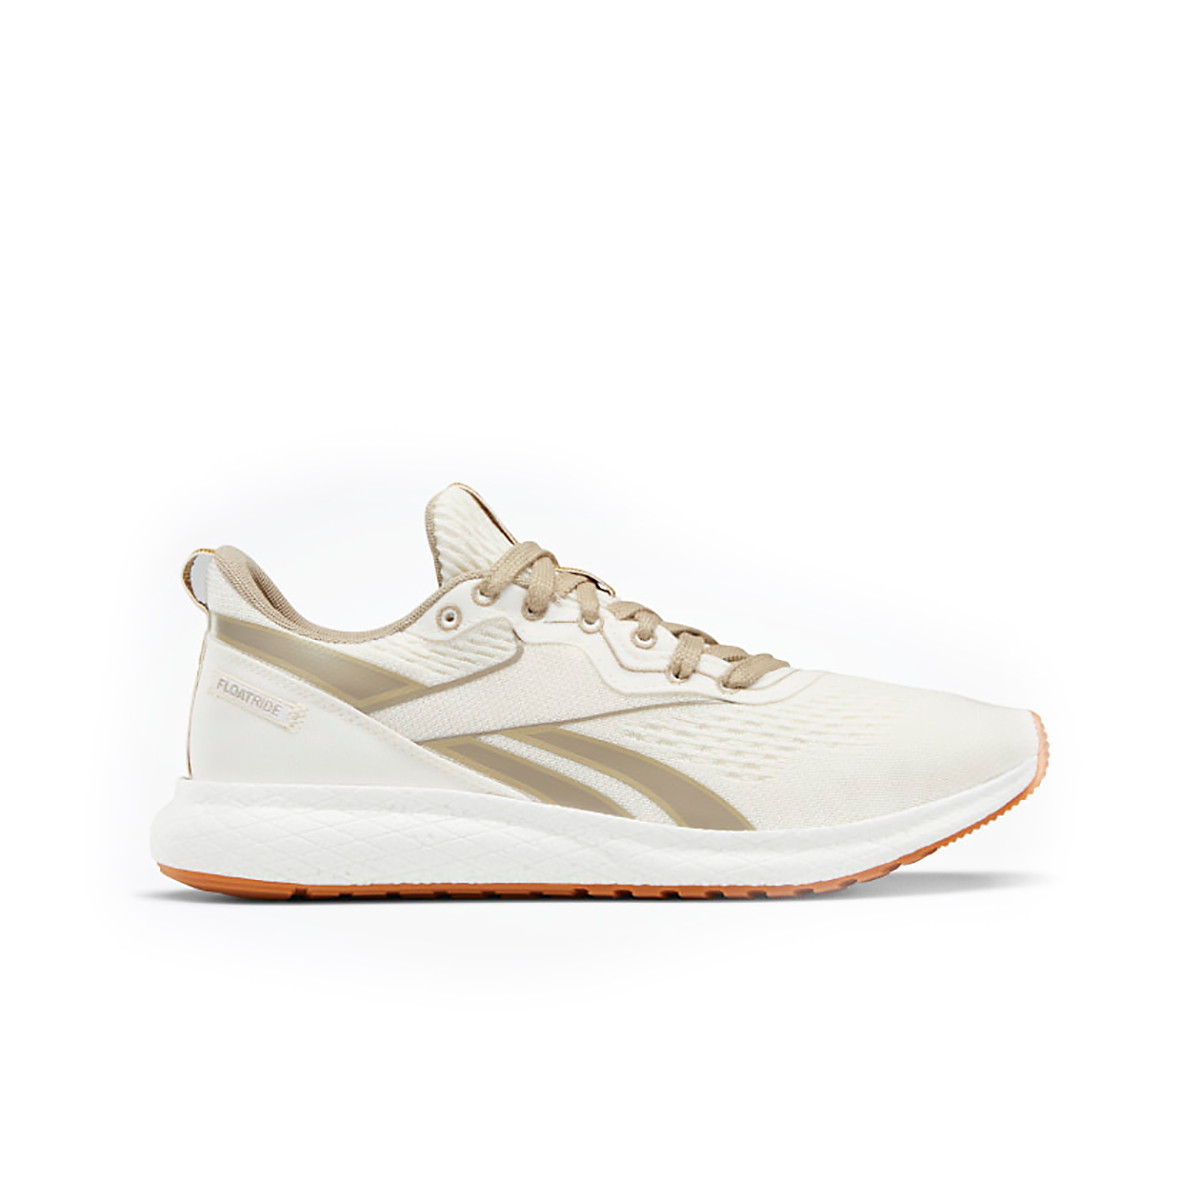 Men's Reebok Forever Floatride Grow Running Shoe - Color: Classic White/Straw/Super Neutral - Size: 8 - Width: Regular, Classic White/Straw/Super Neutral, large, image 1